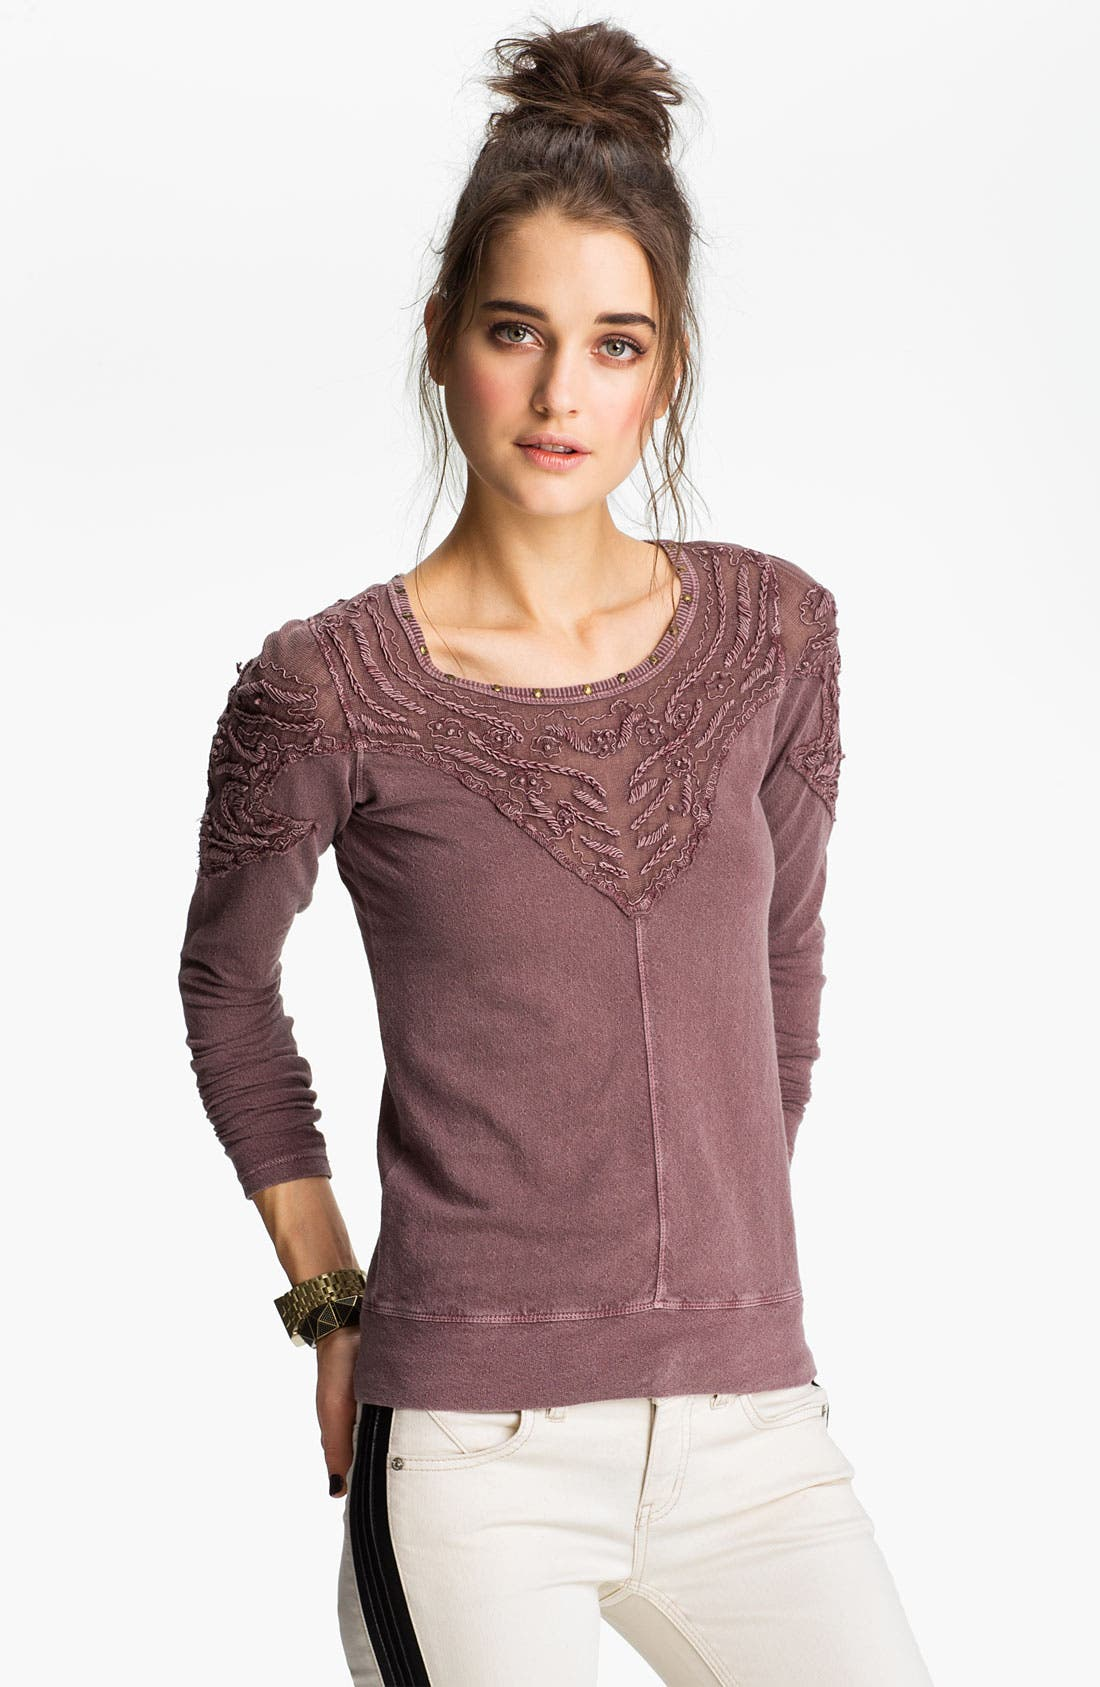 Alternate Image 1 Selected - Free People 'Barton Springs' Embroidered Shoulder Top